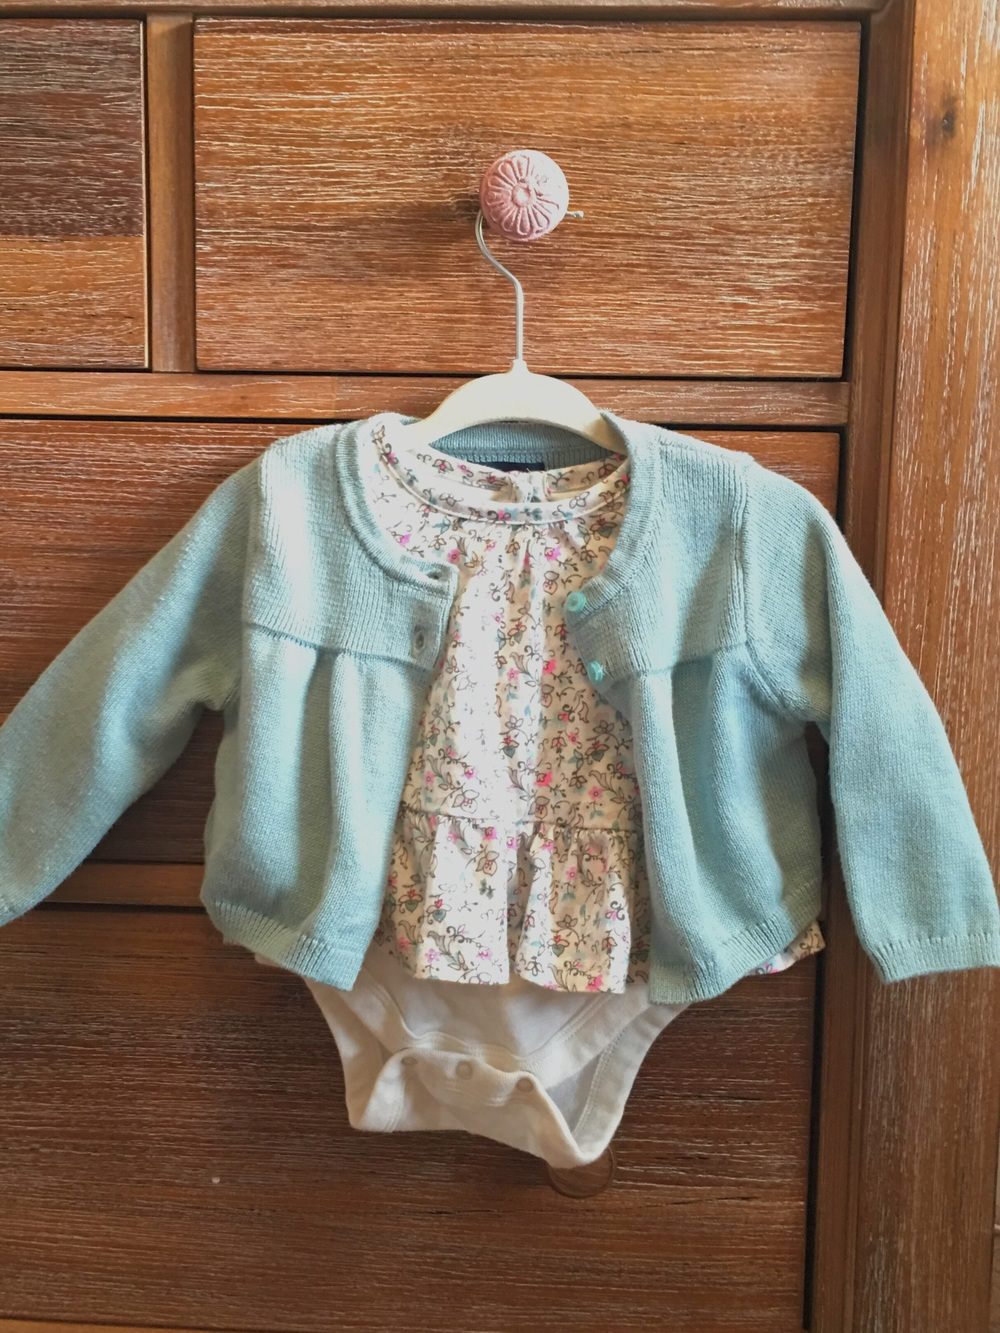 Baby fashion | Kid ootd | Meagan Kludt | the winemakers wife